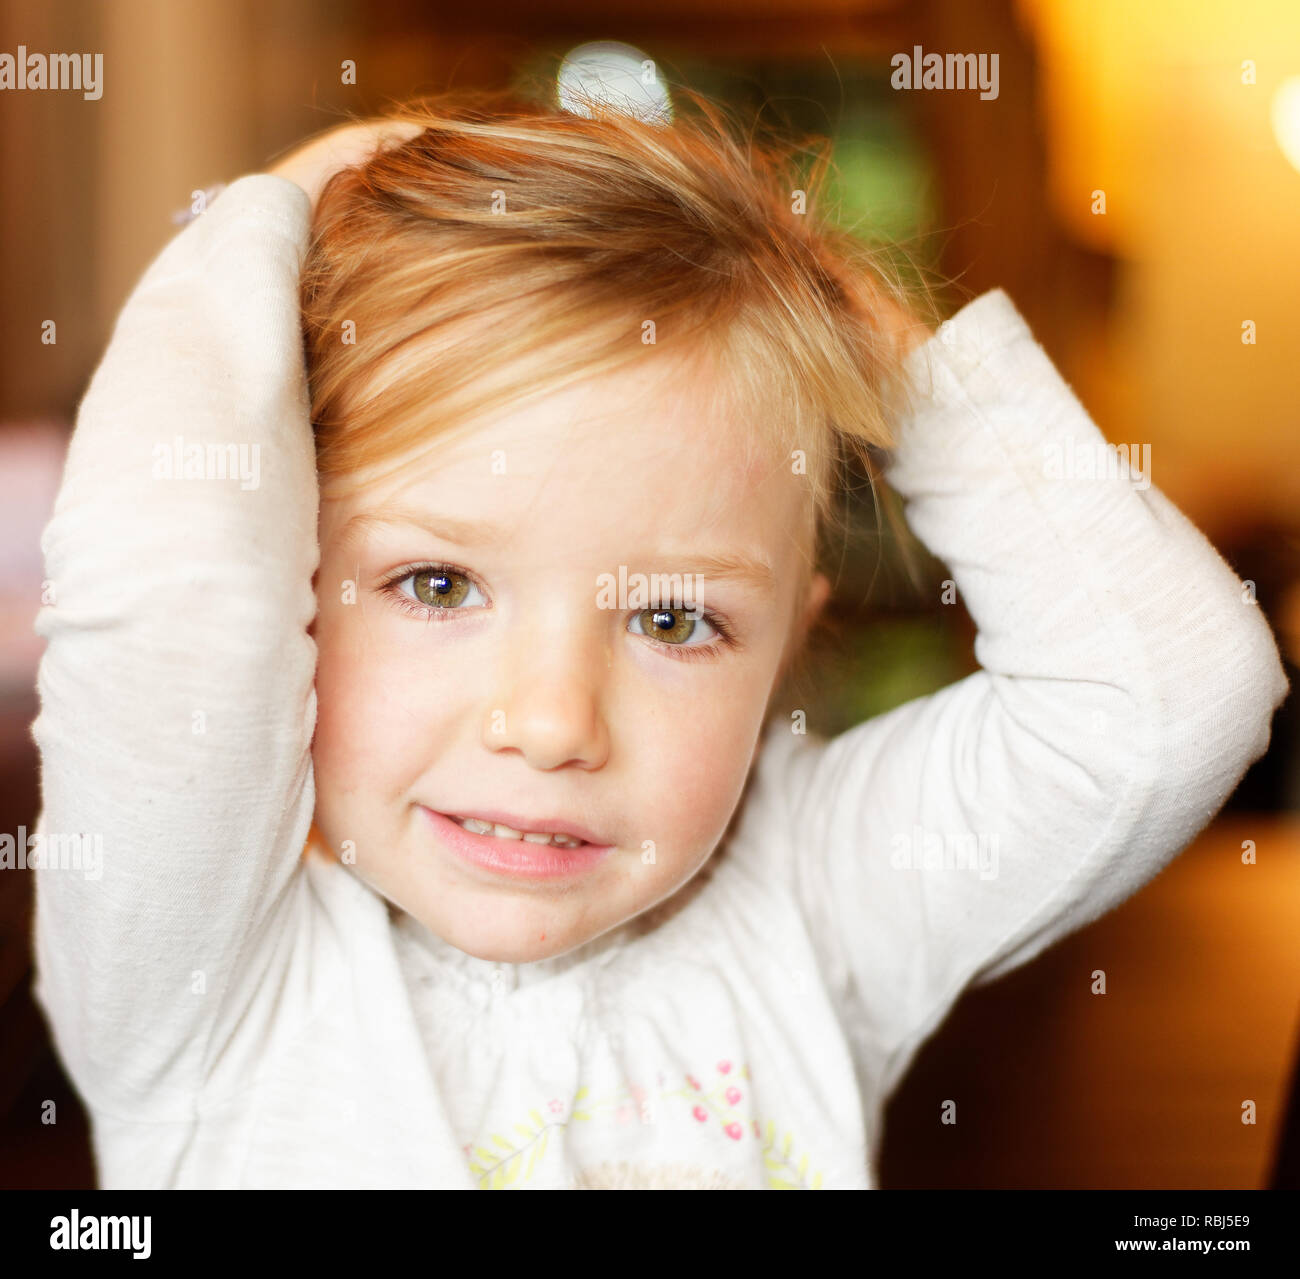 a-portrait-of-a-beautiful-smiling-four-year-old-girl-RBJ5E9.jpg